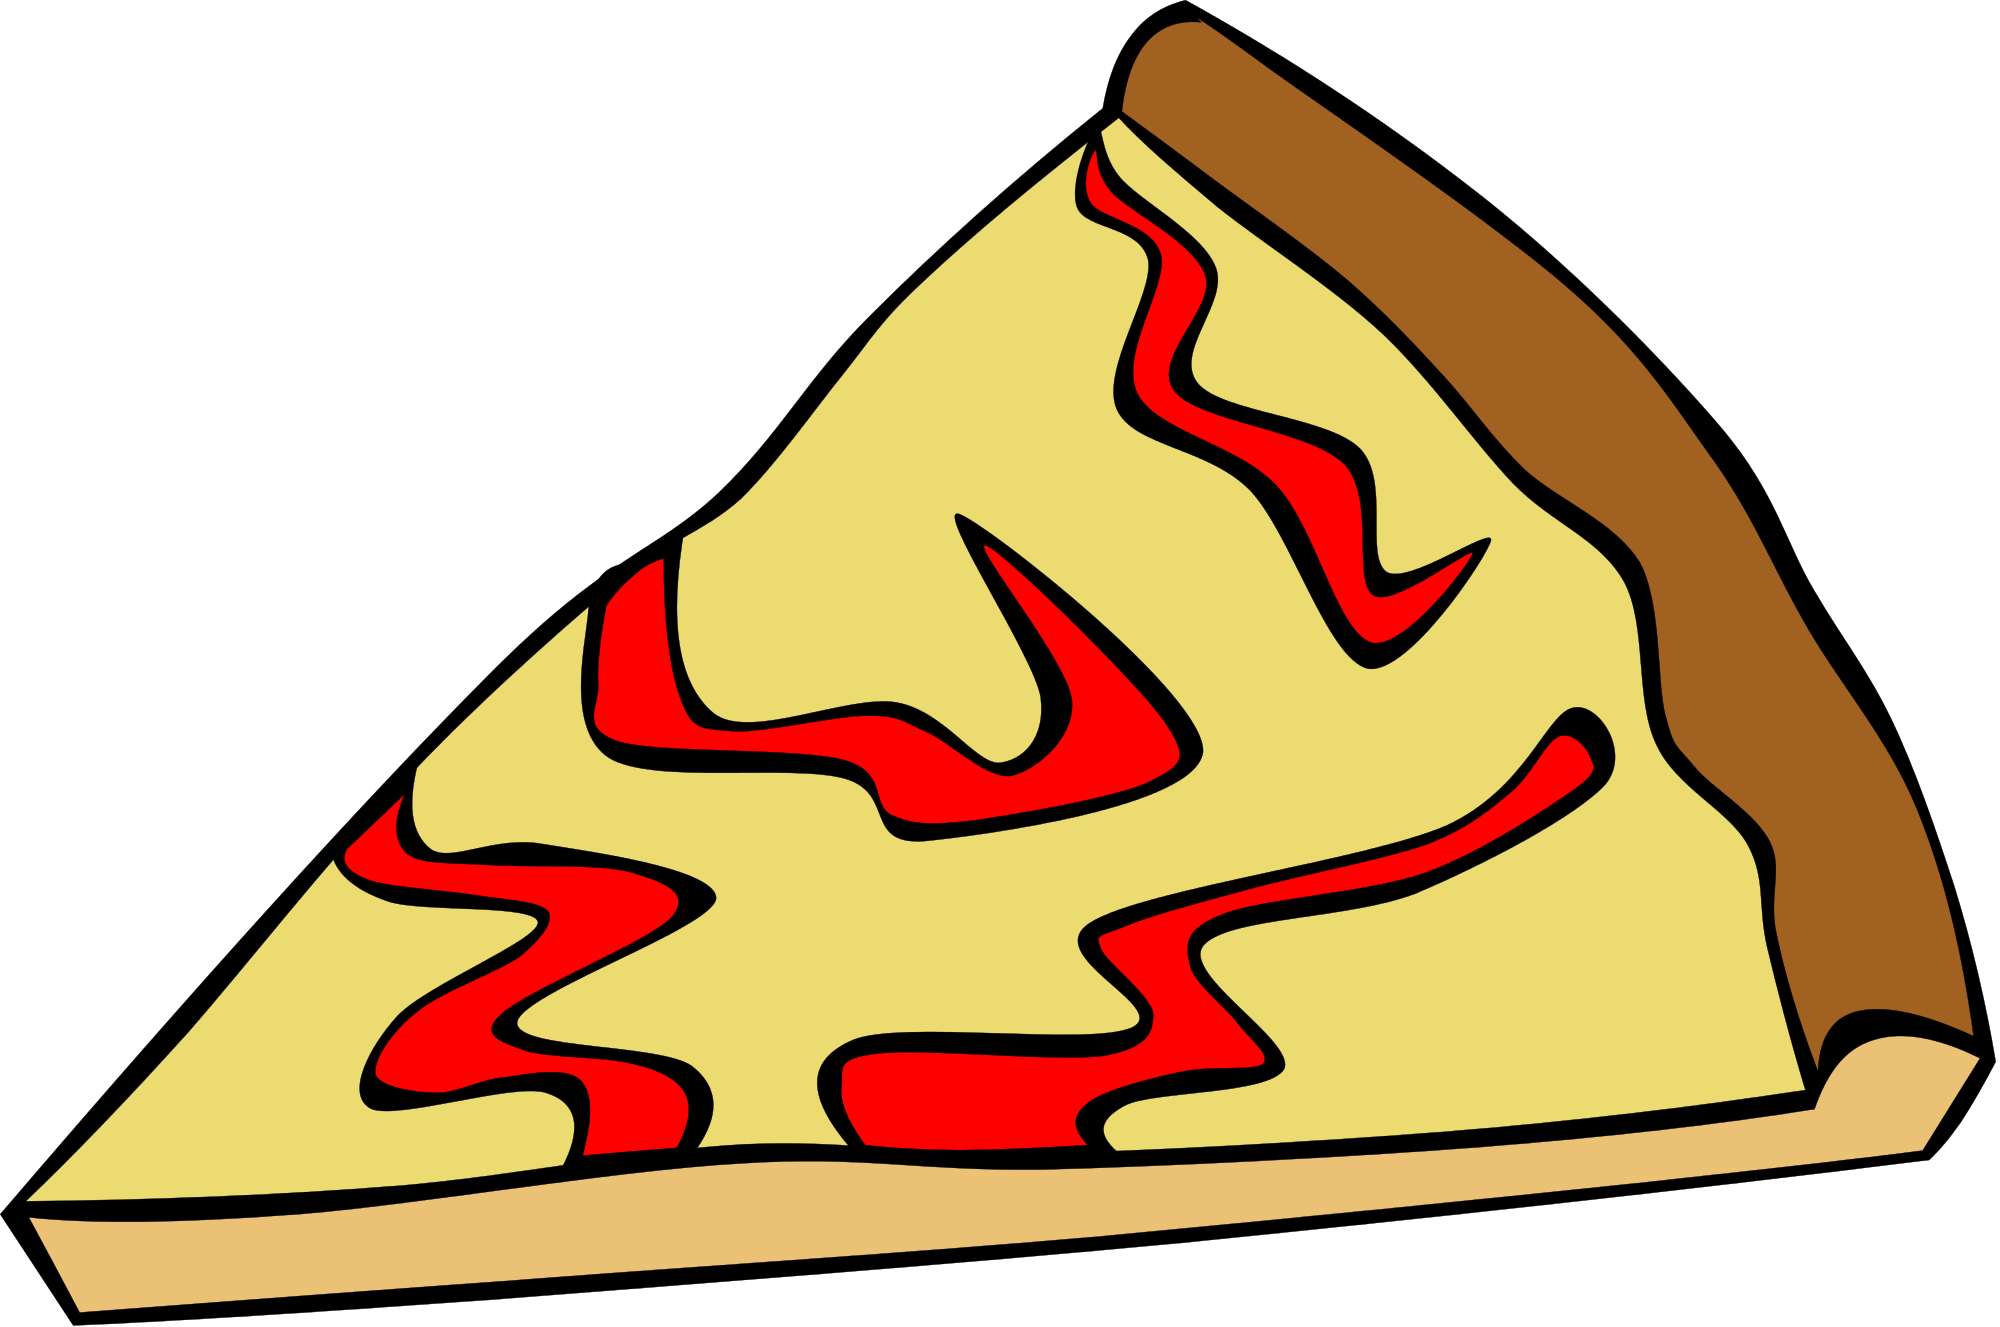 Pizza clipart cheese pizza. Yellow page clip art